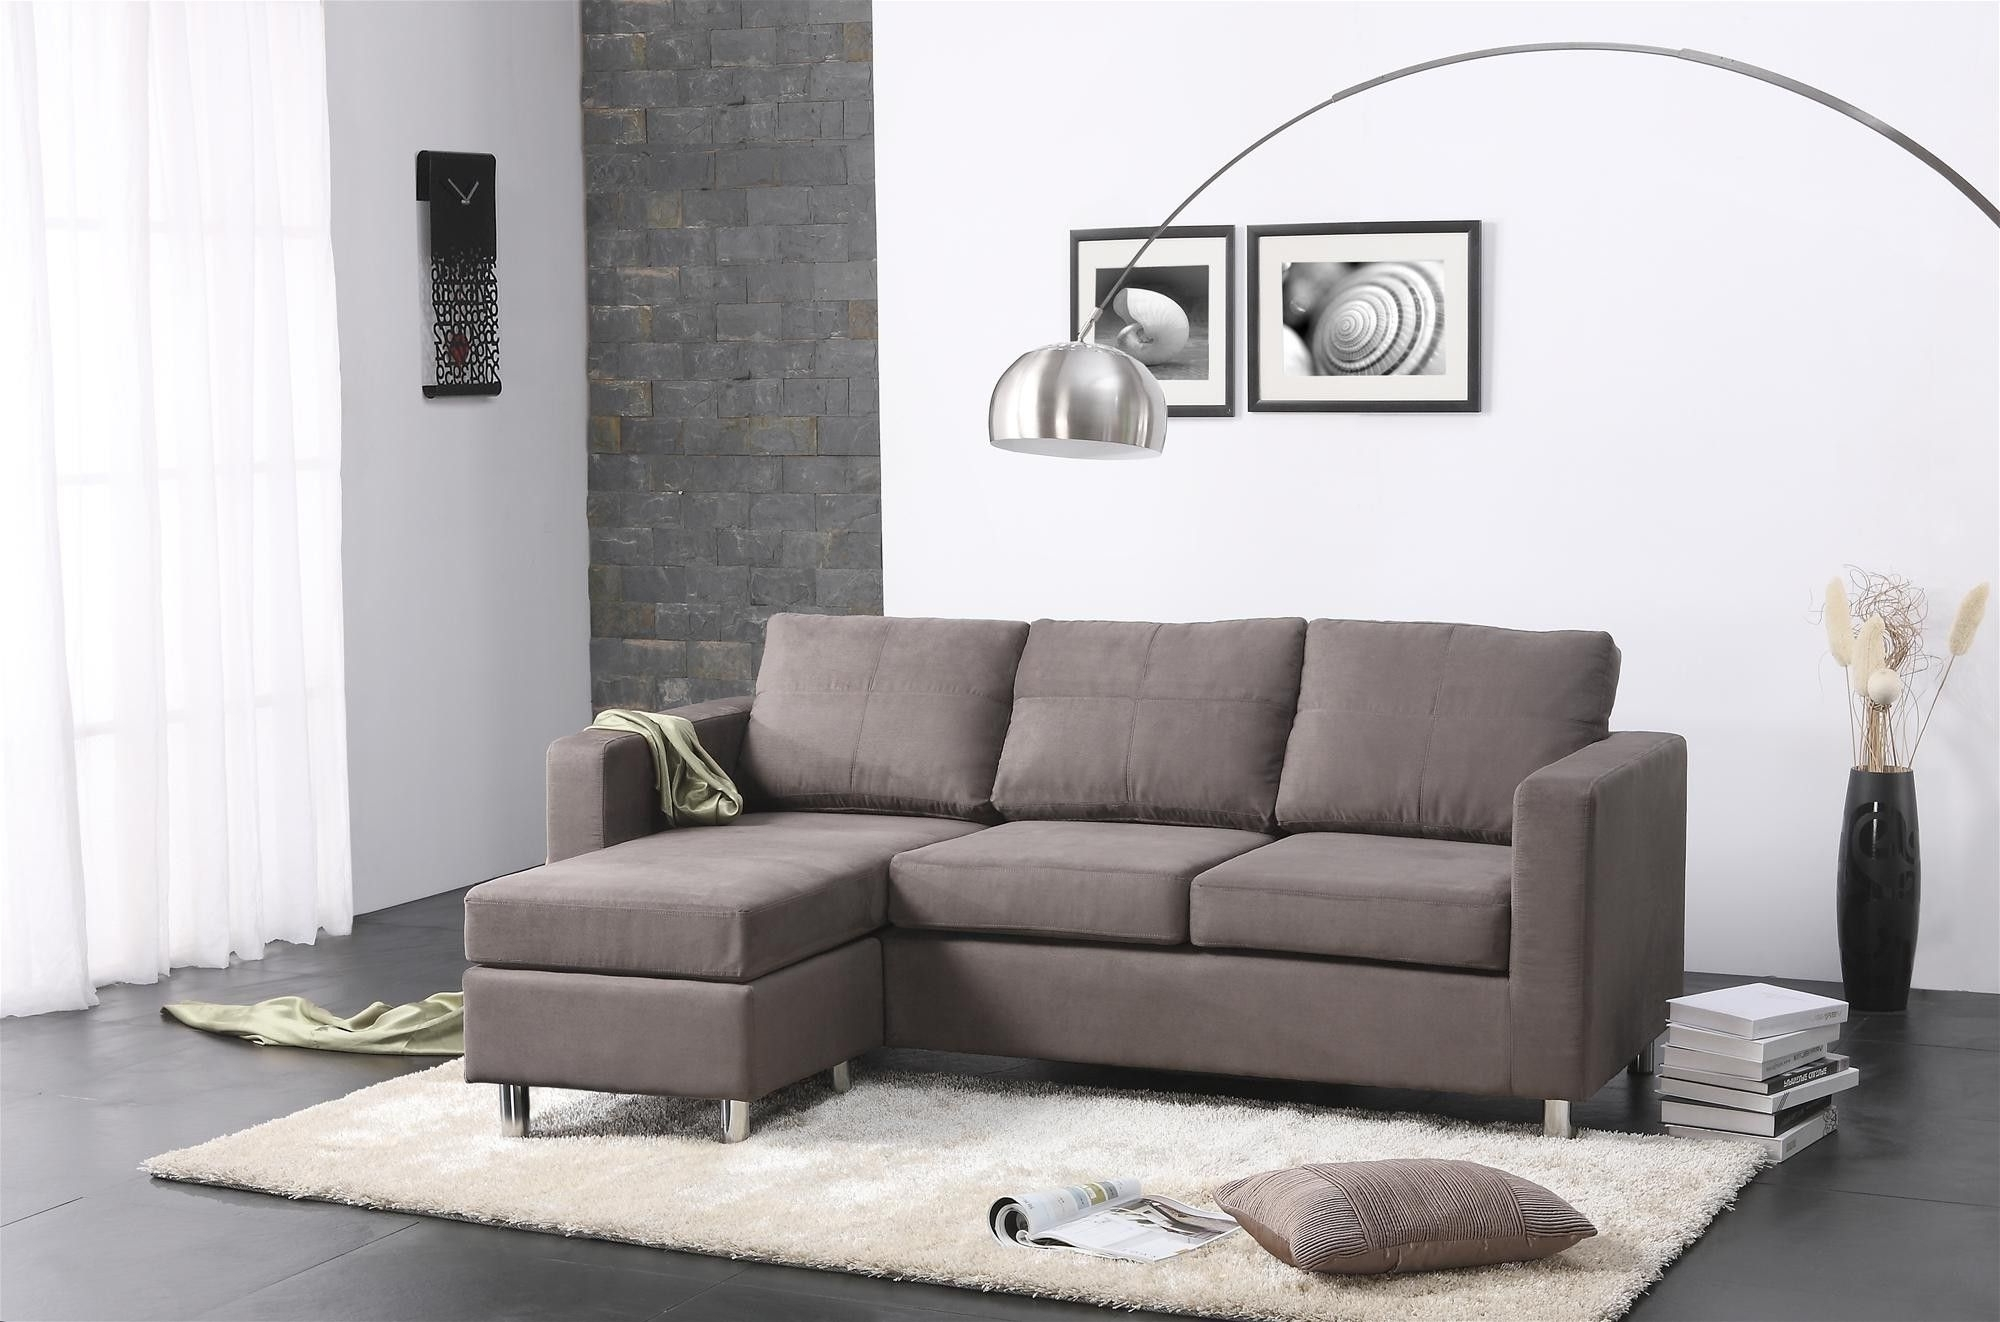 Well Known Chaise Lounge Chairs For Small Spaces For Amazing Modern Small Spaces Living Room Decors With Grey Sectional (View 14 of 15)